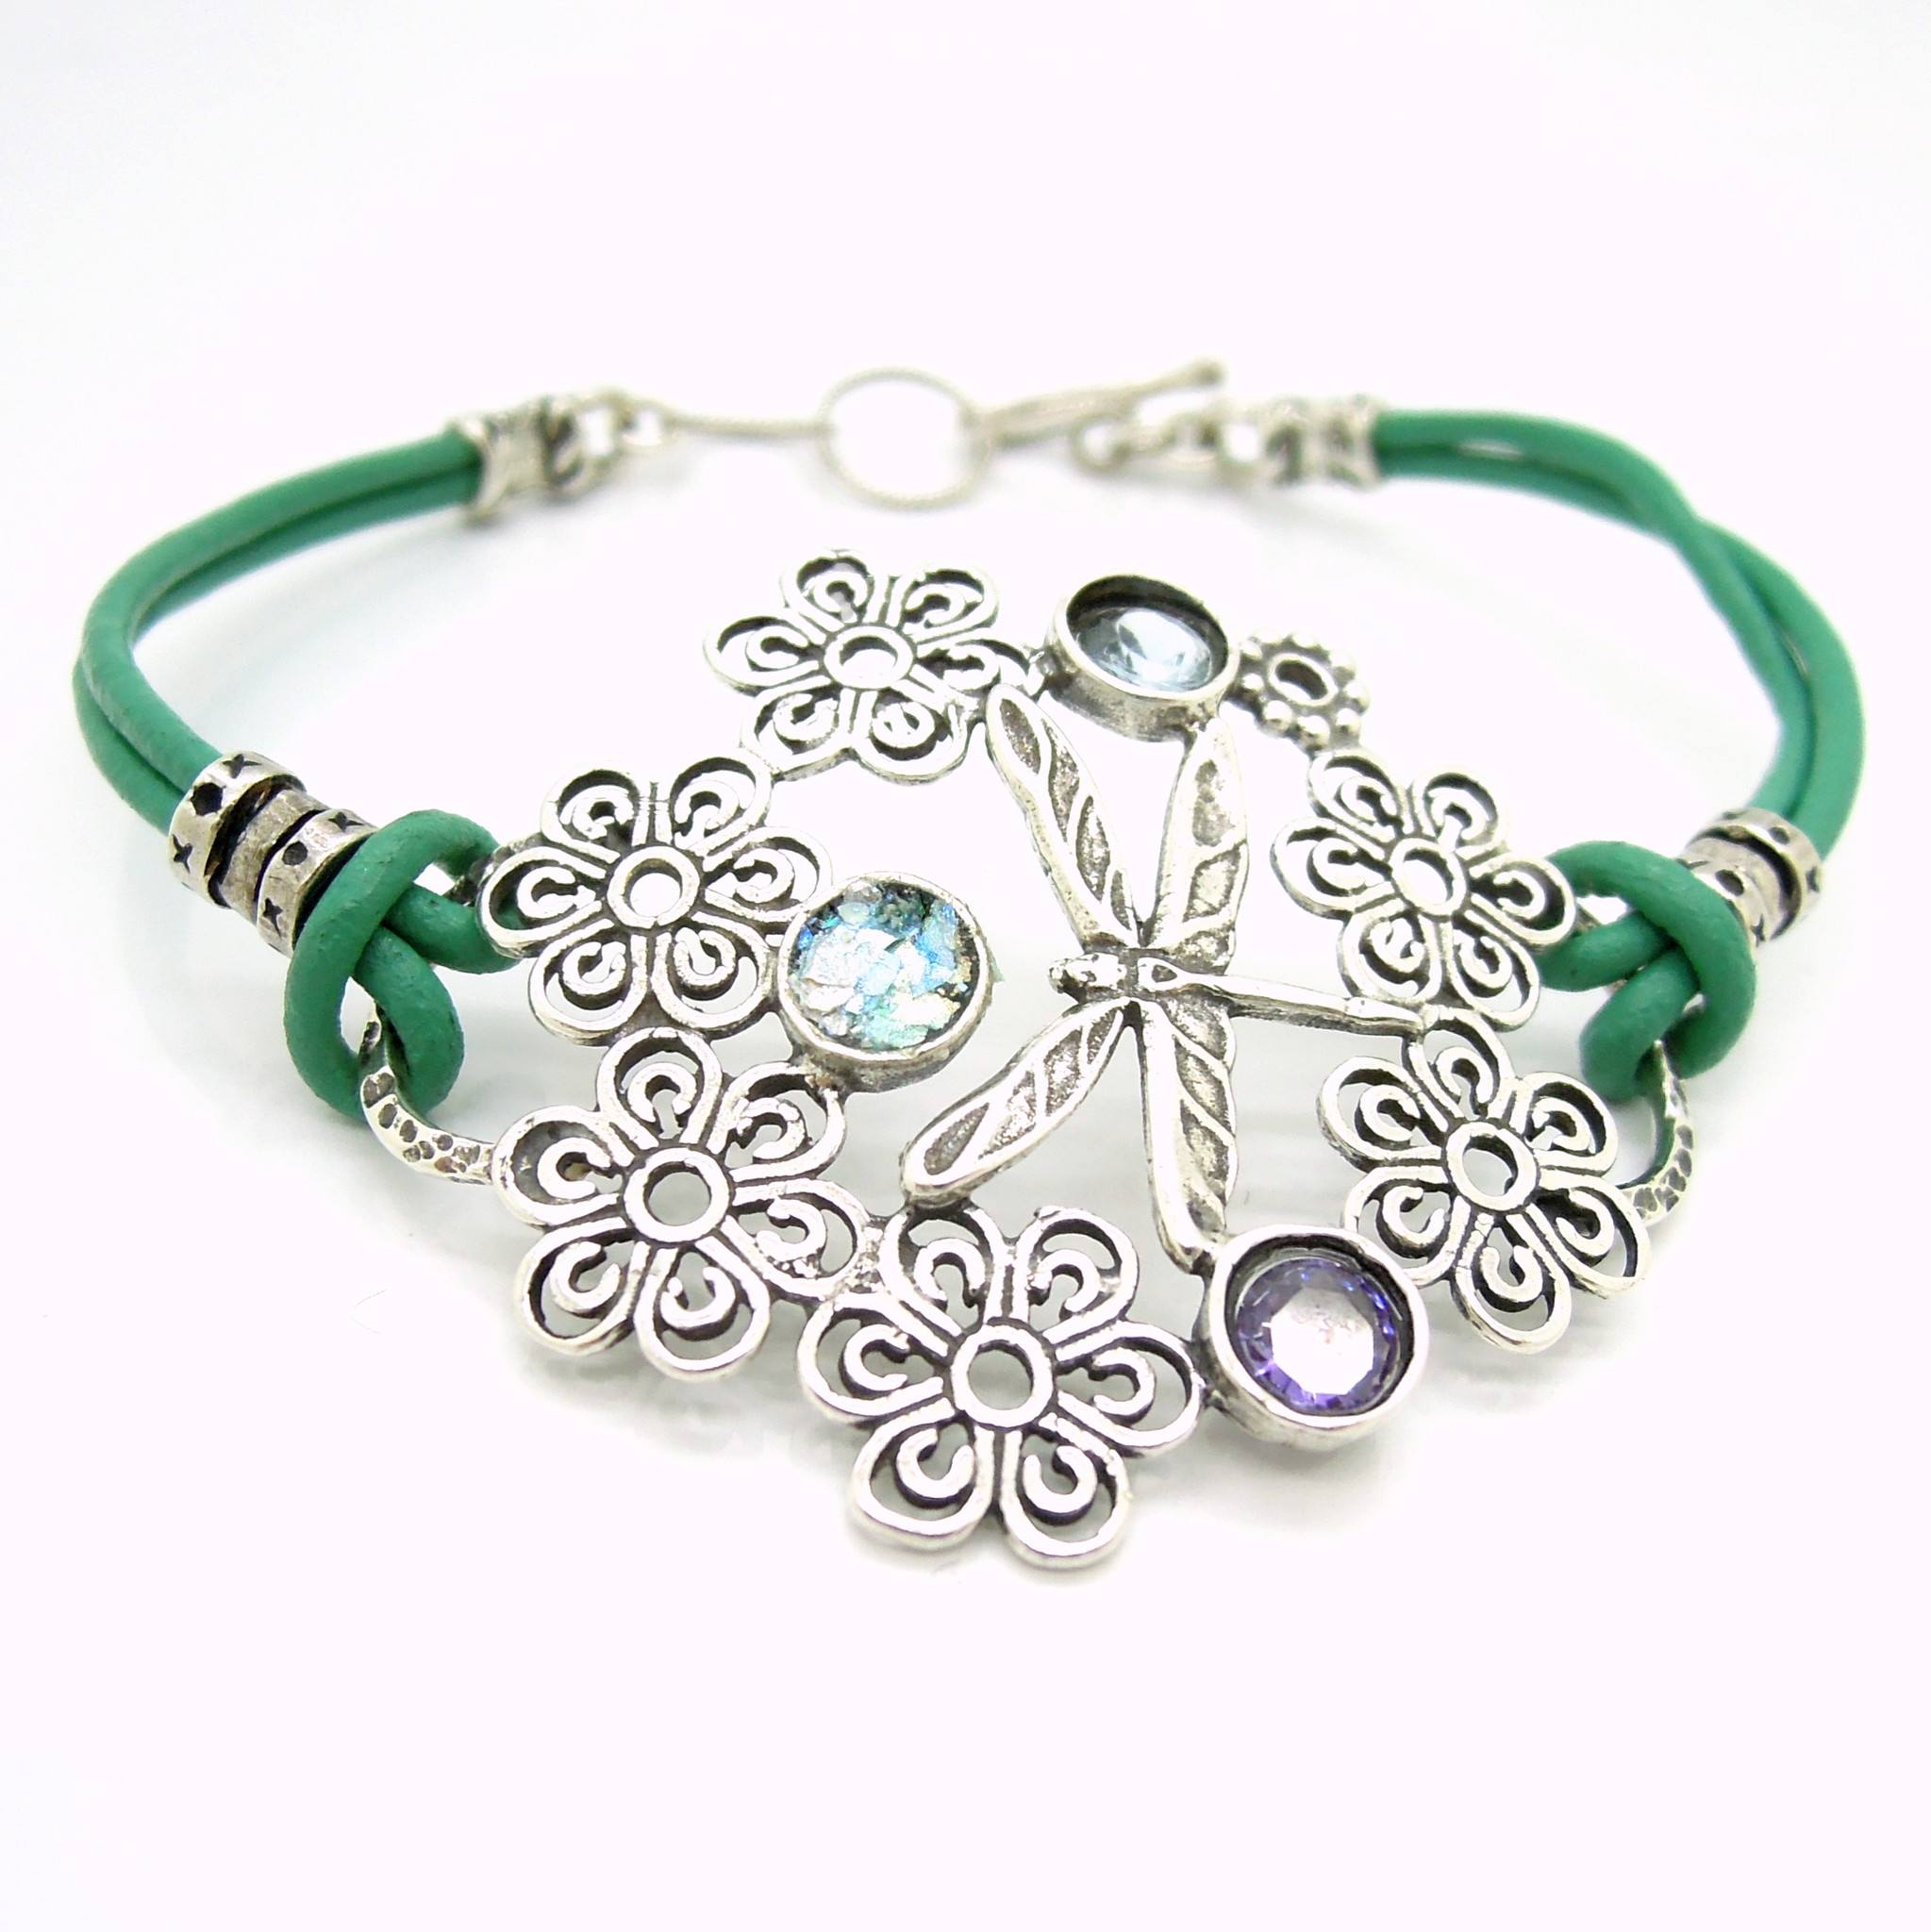 Dragonfly Bracelet With Leather Sterling Silver And Gemstones